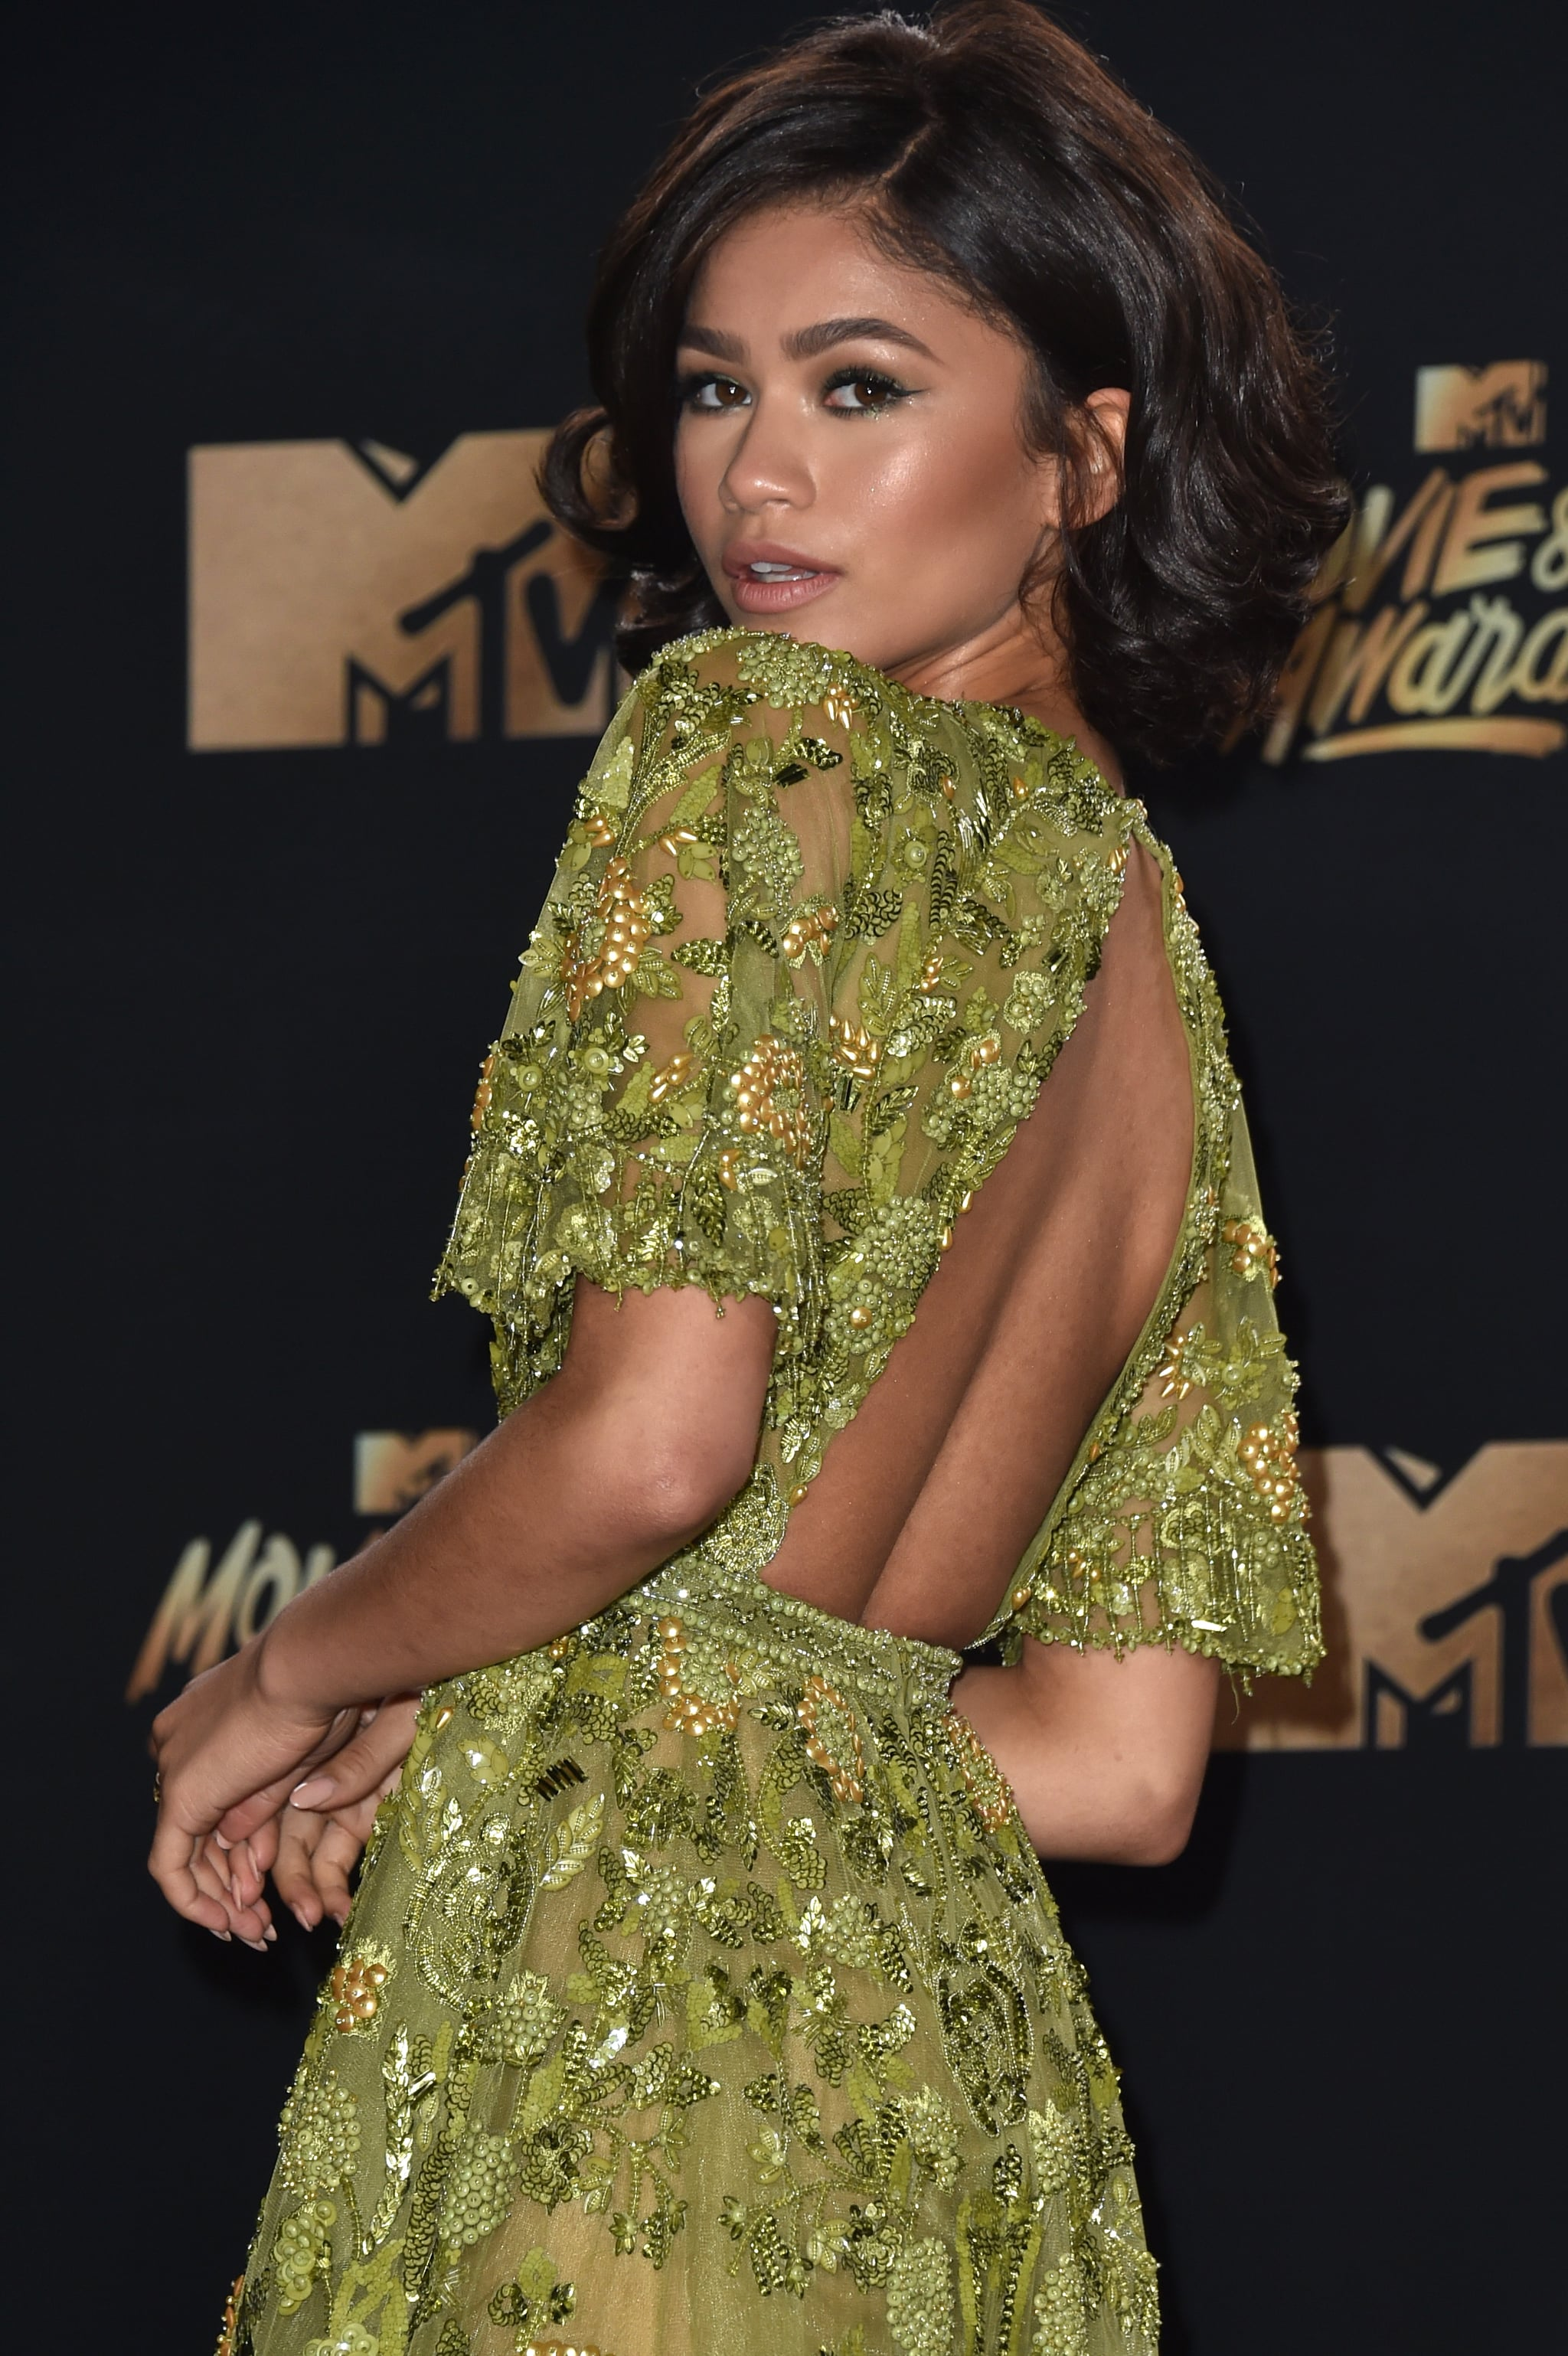 Zendaya Hair And Makeup At The 2017 Mtv Movie Awards